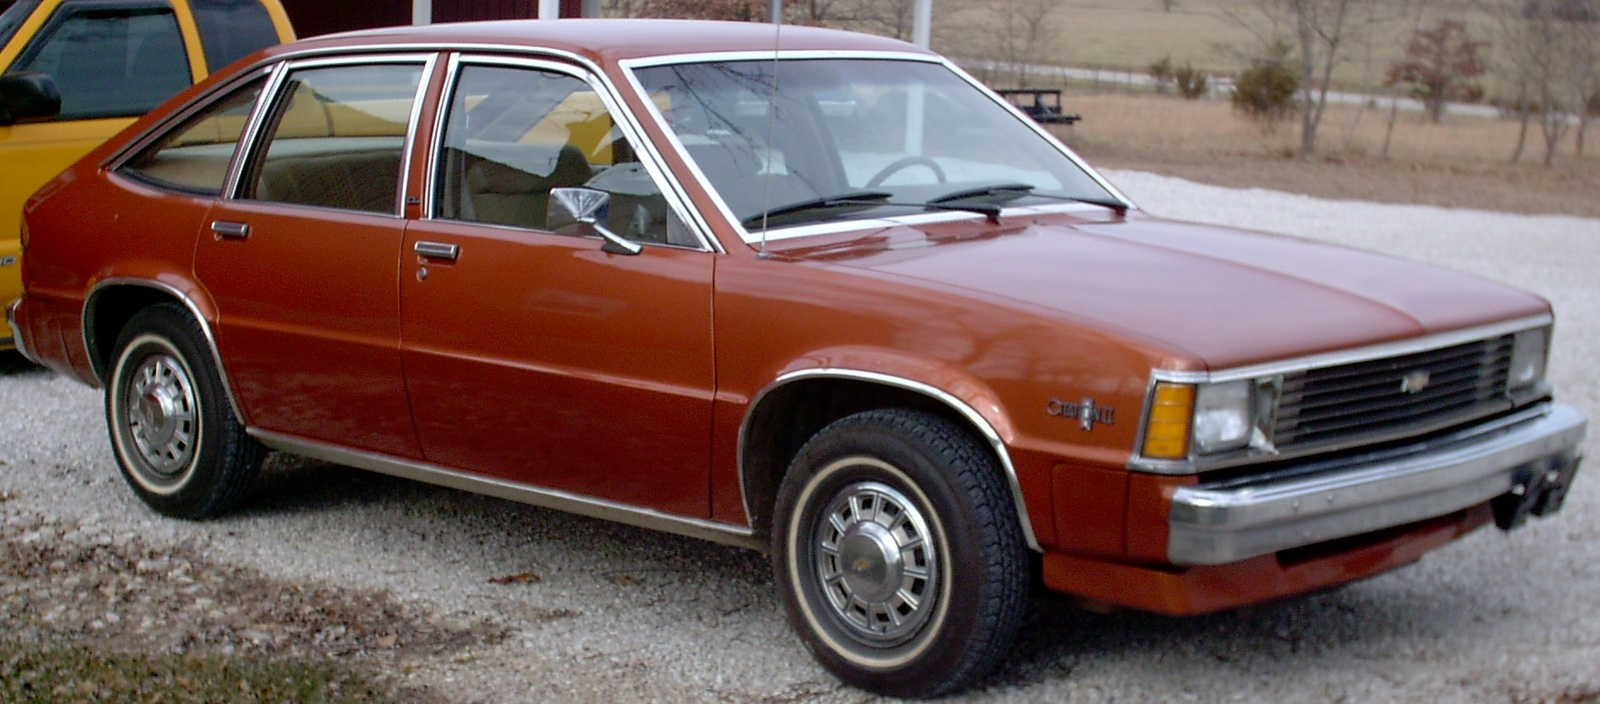 1980 Chevrolet Citation #16